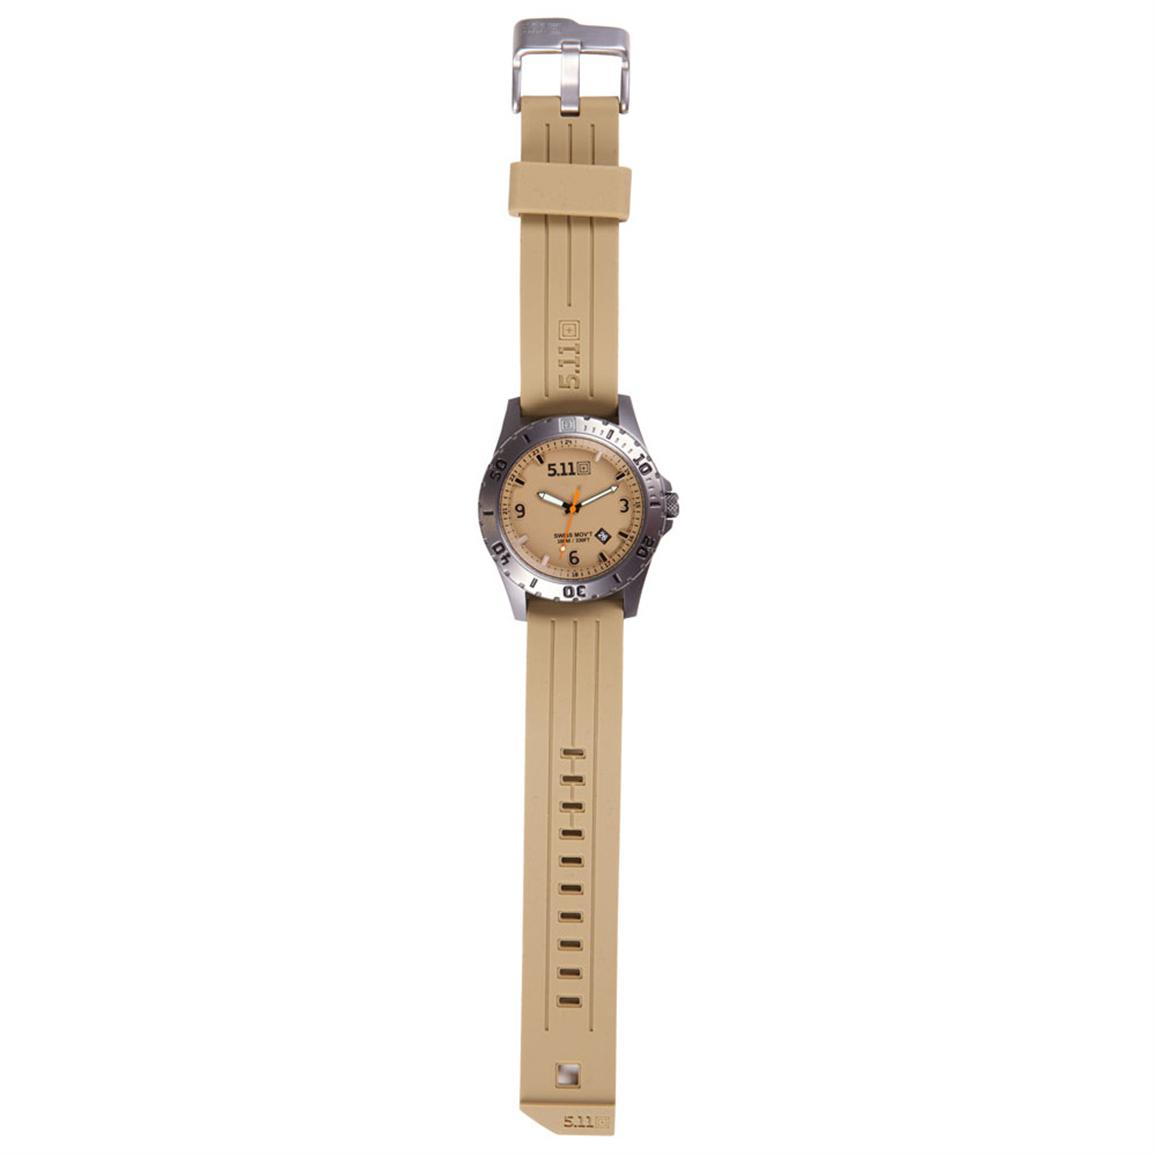 5.11 Tactical® Sentinel Watch, Coyote